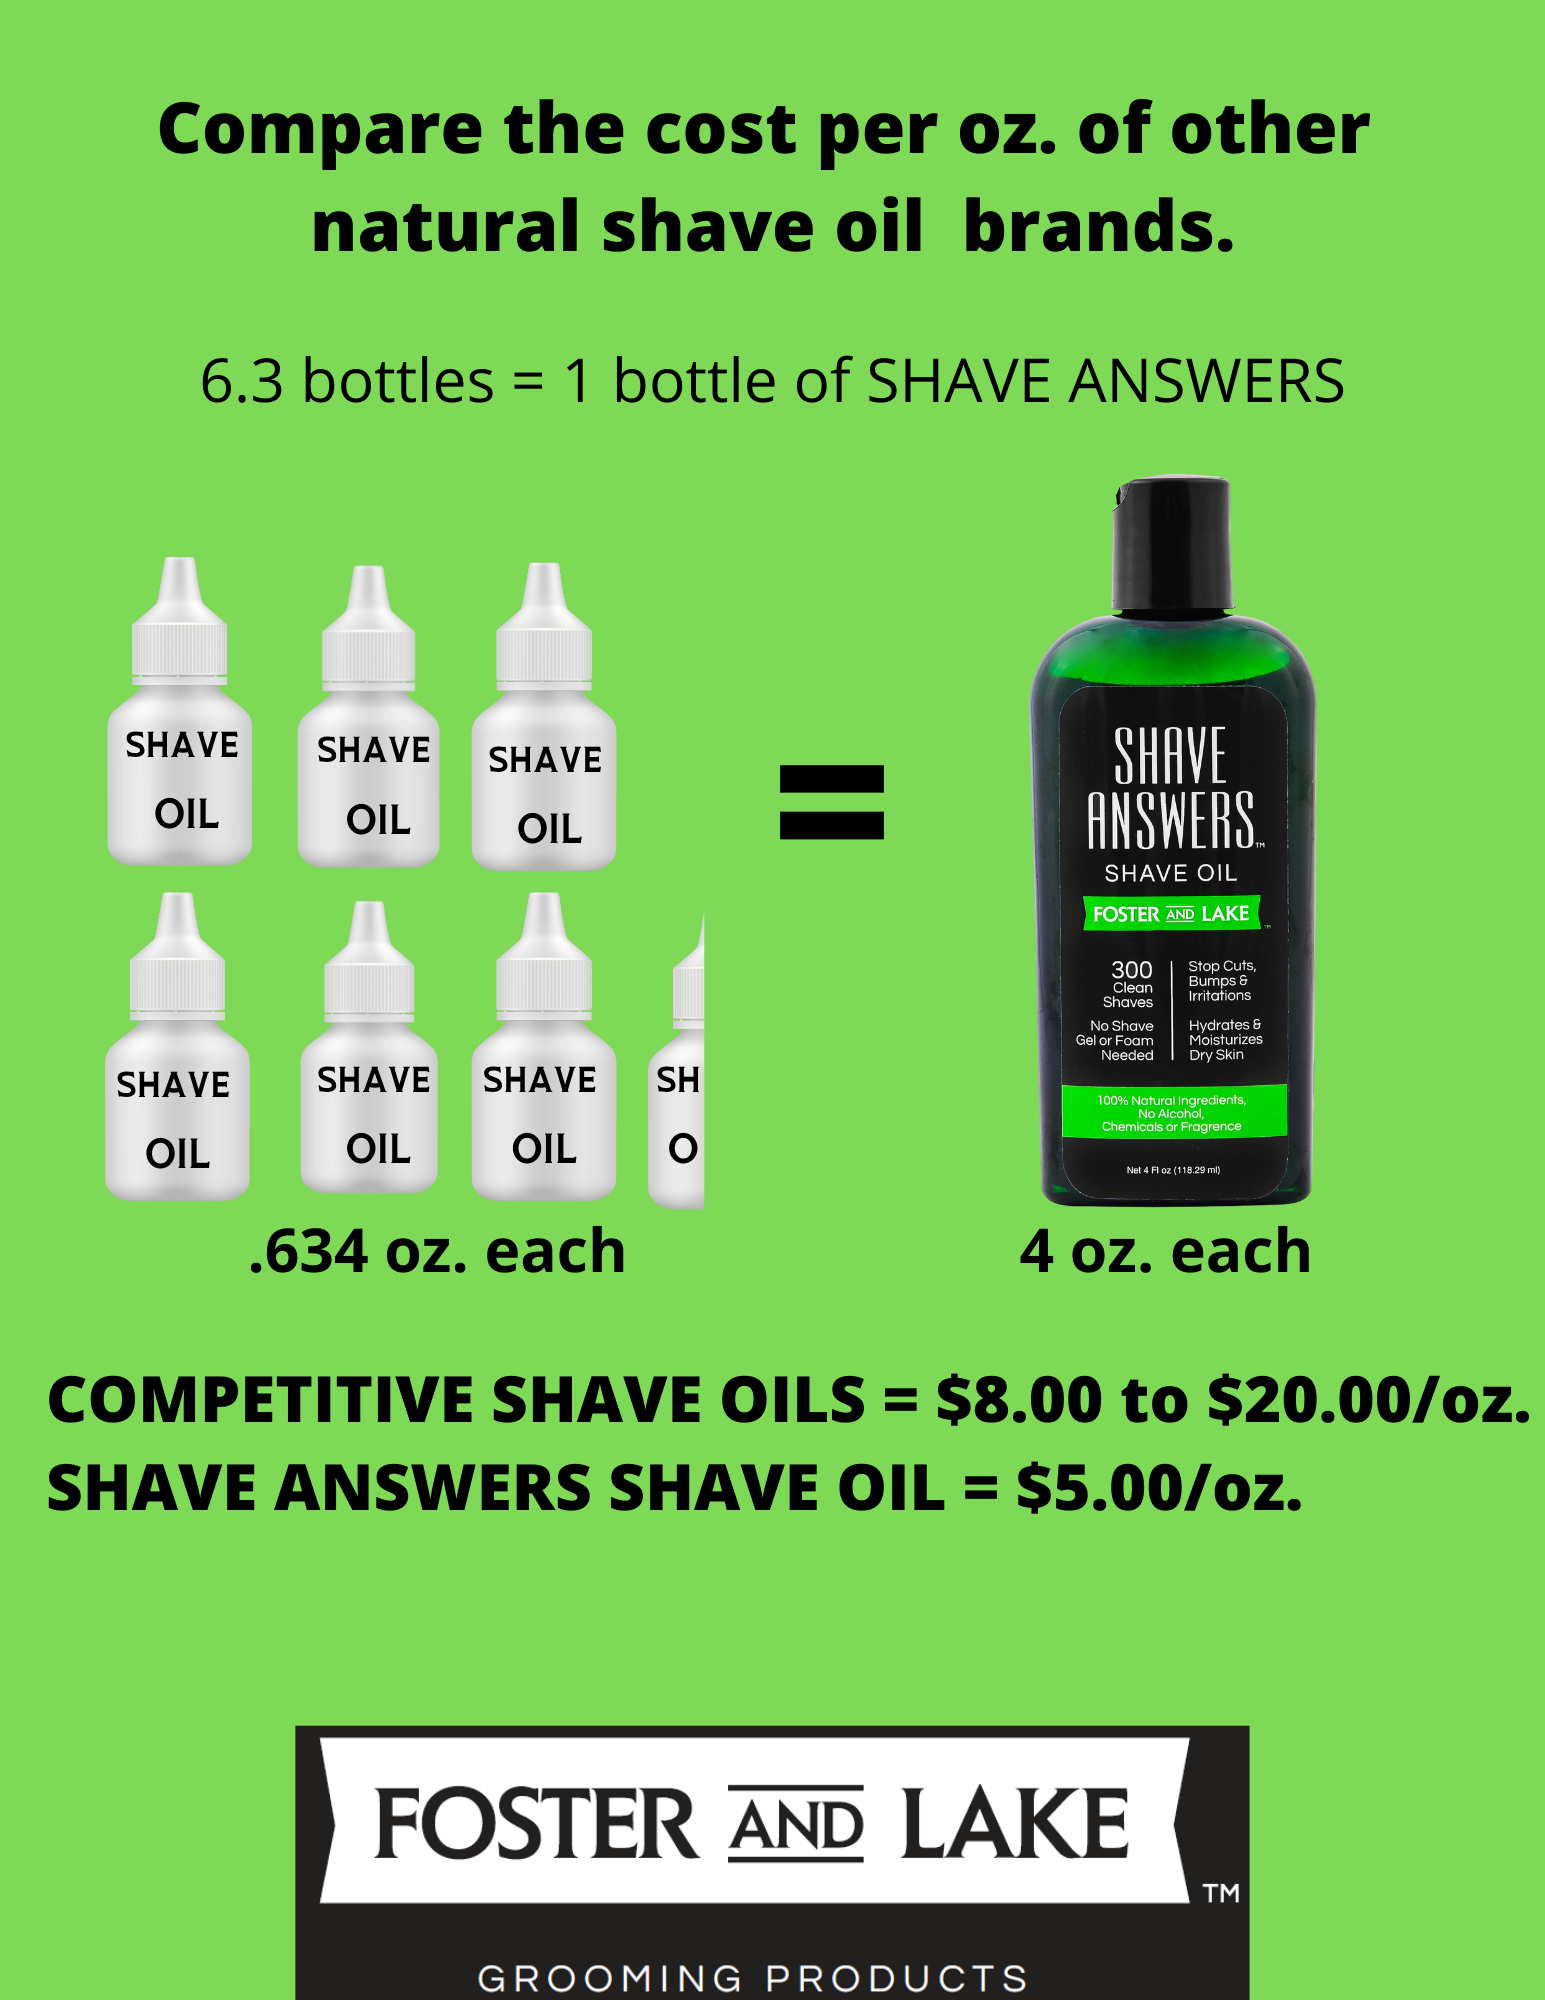 shave-answers-comparison-jpg.png